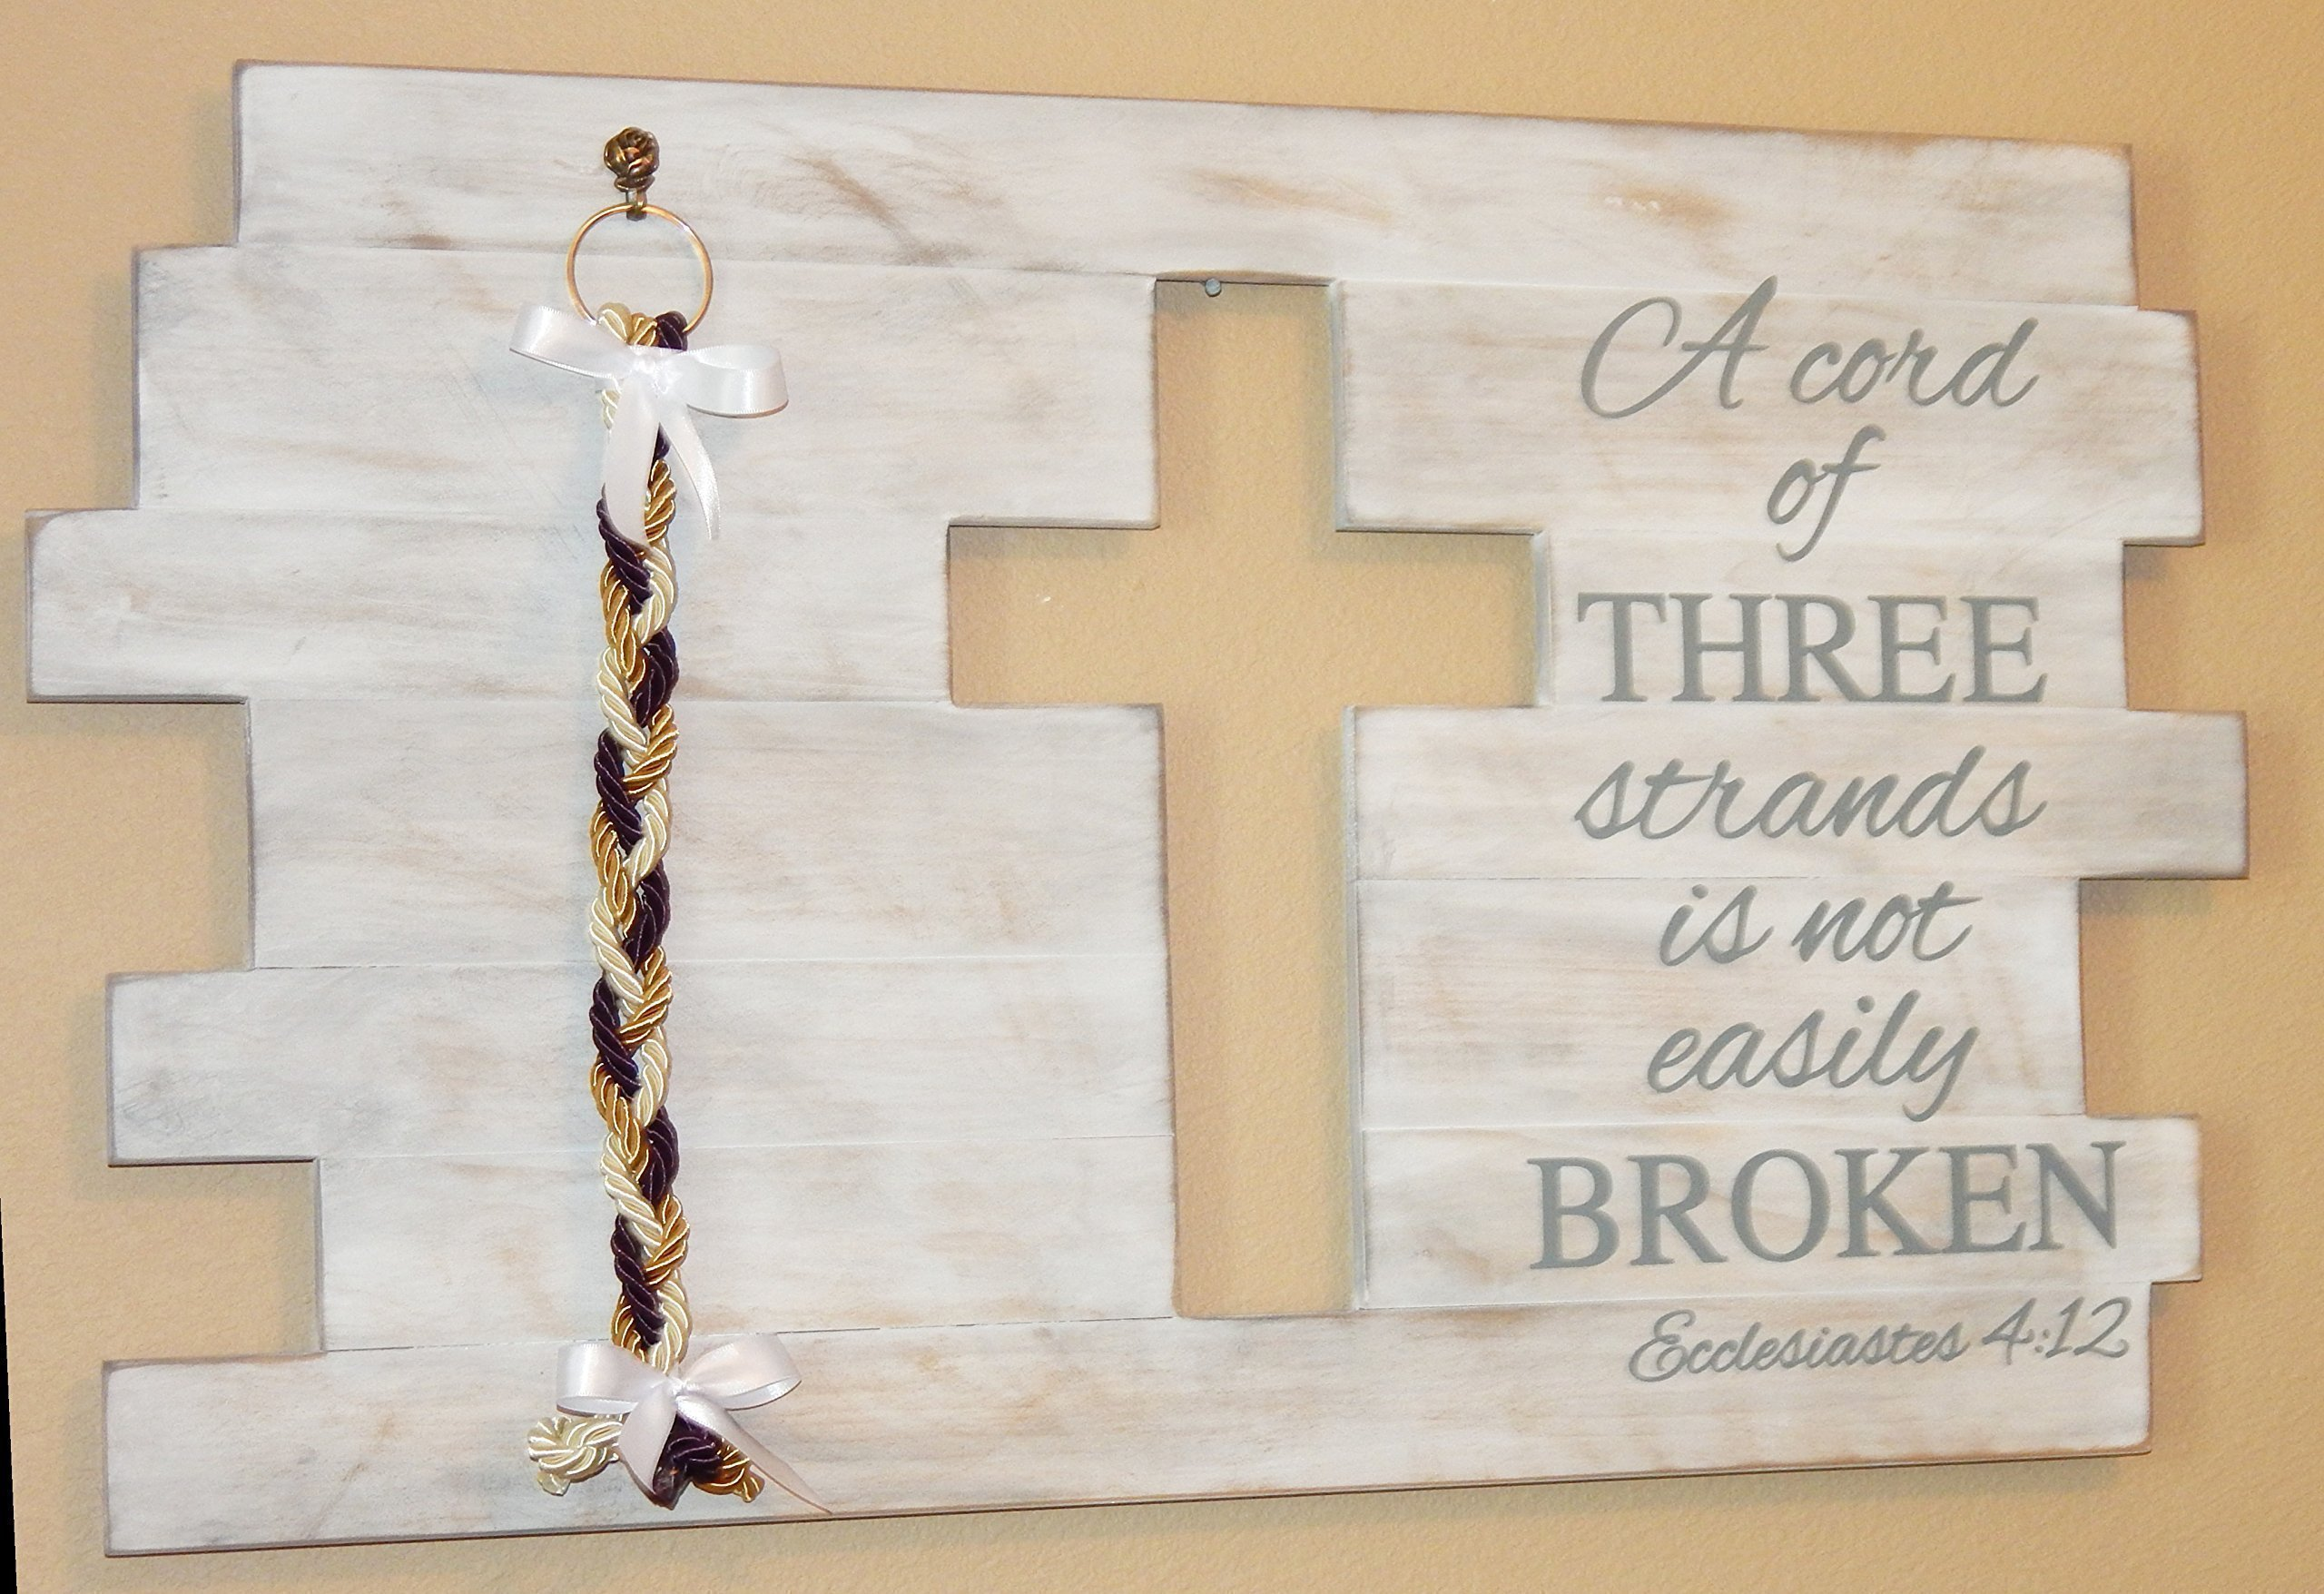 Gods Wedding Cross Board Sign Whitewash A Cord of Three Strands by Unity Braids®